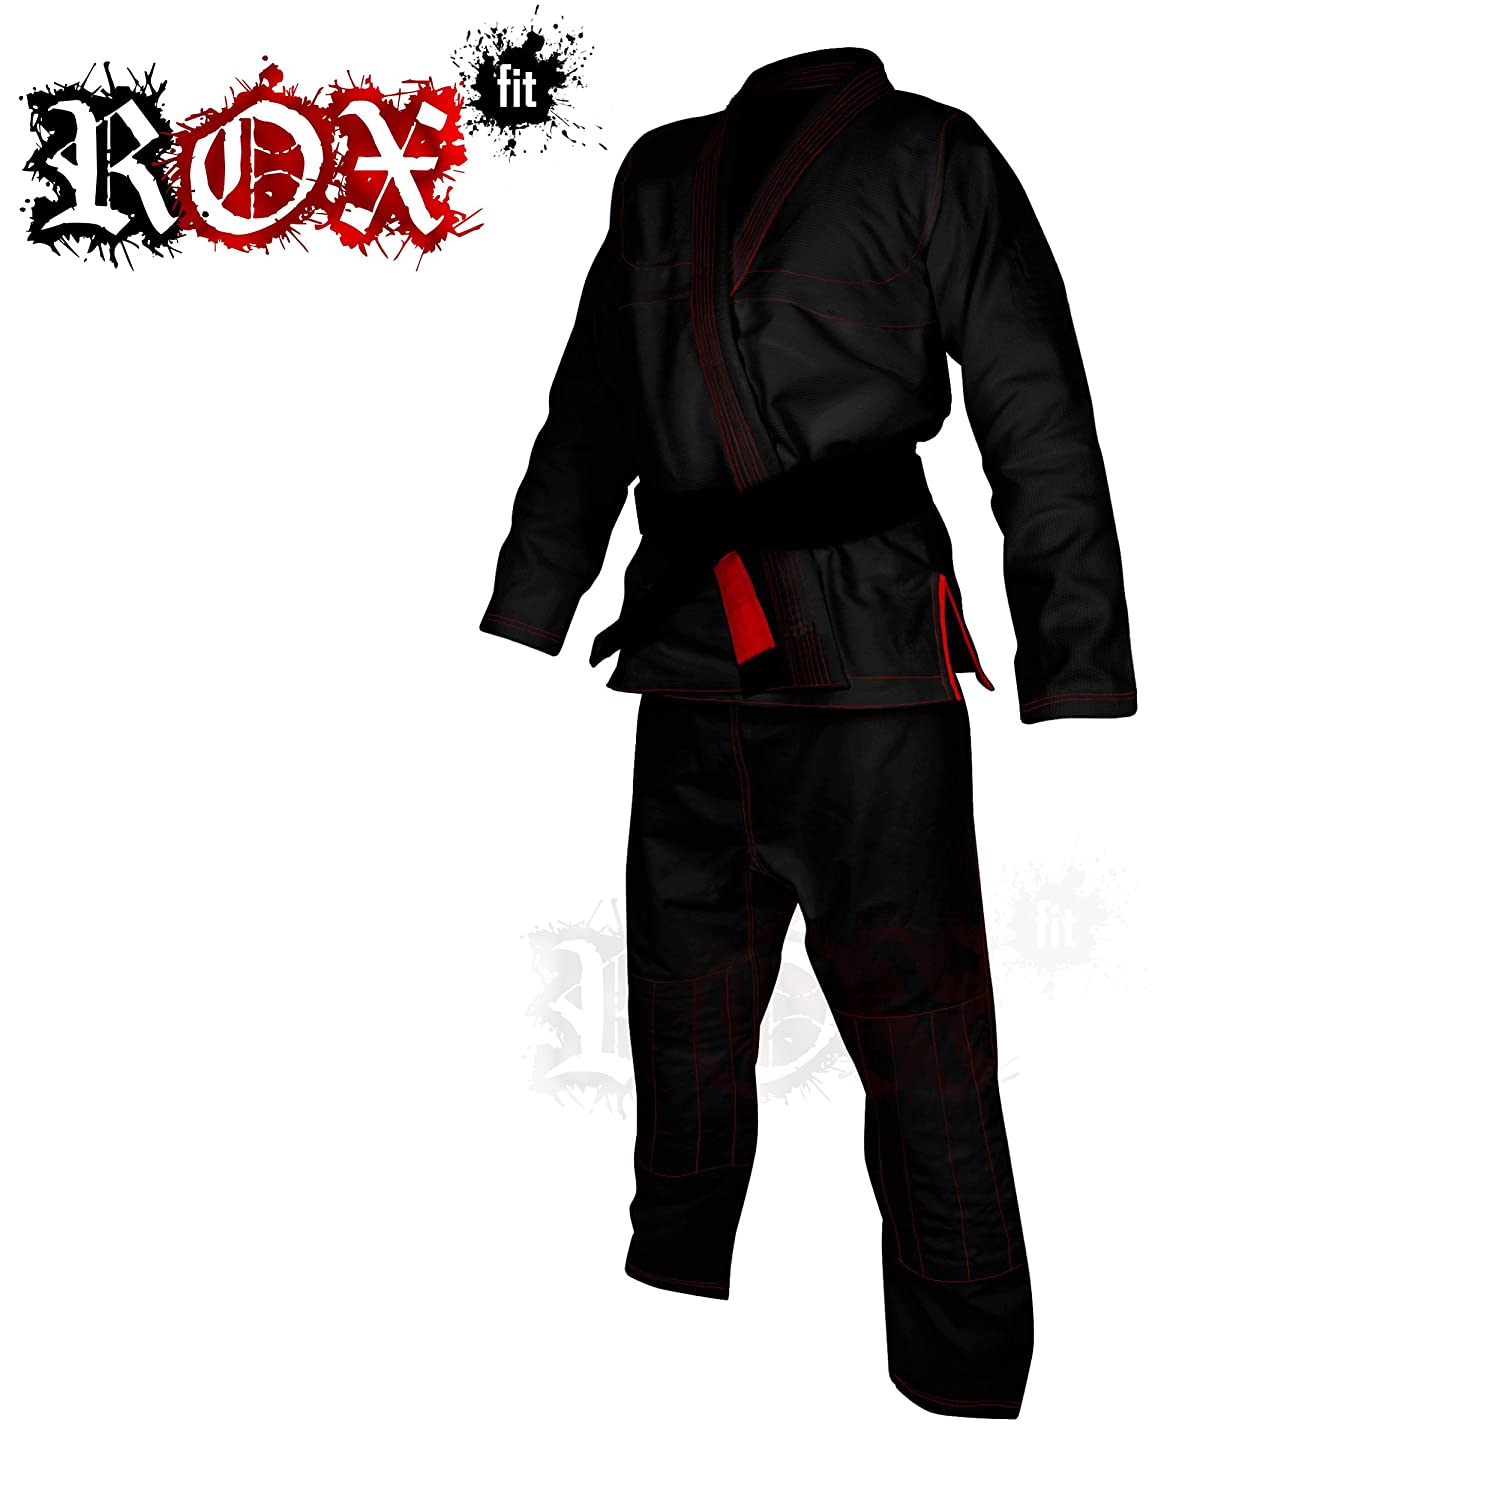 ROX Fit BJJ Gi trajes para la competencia Brazilian Jiu Jitsu Brasileño, color negro con costuras de color rojo, A0, A1, A2, A3, A4, A5, A6, color Negro - Black Suit With Red Stitching, tamaño A0 ROX-10-20-30